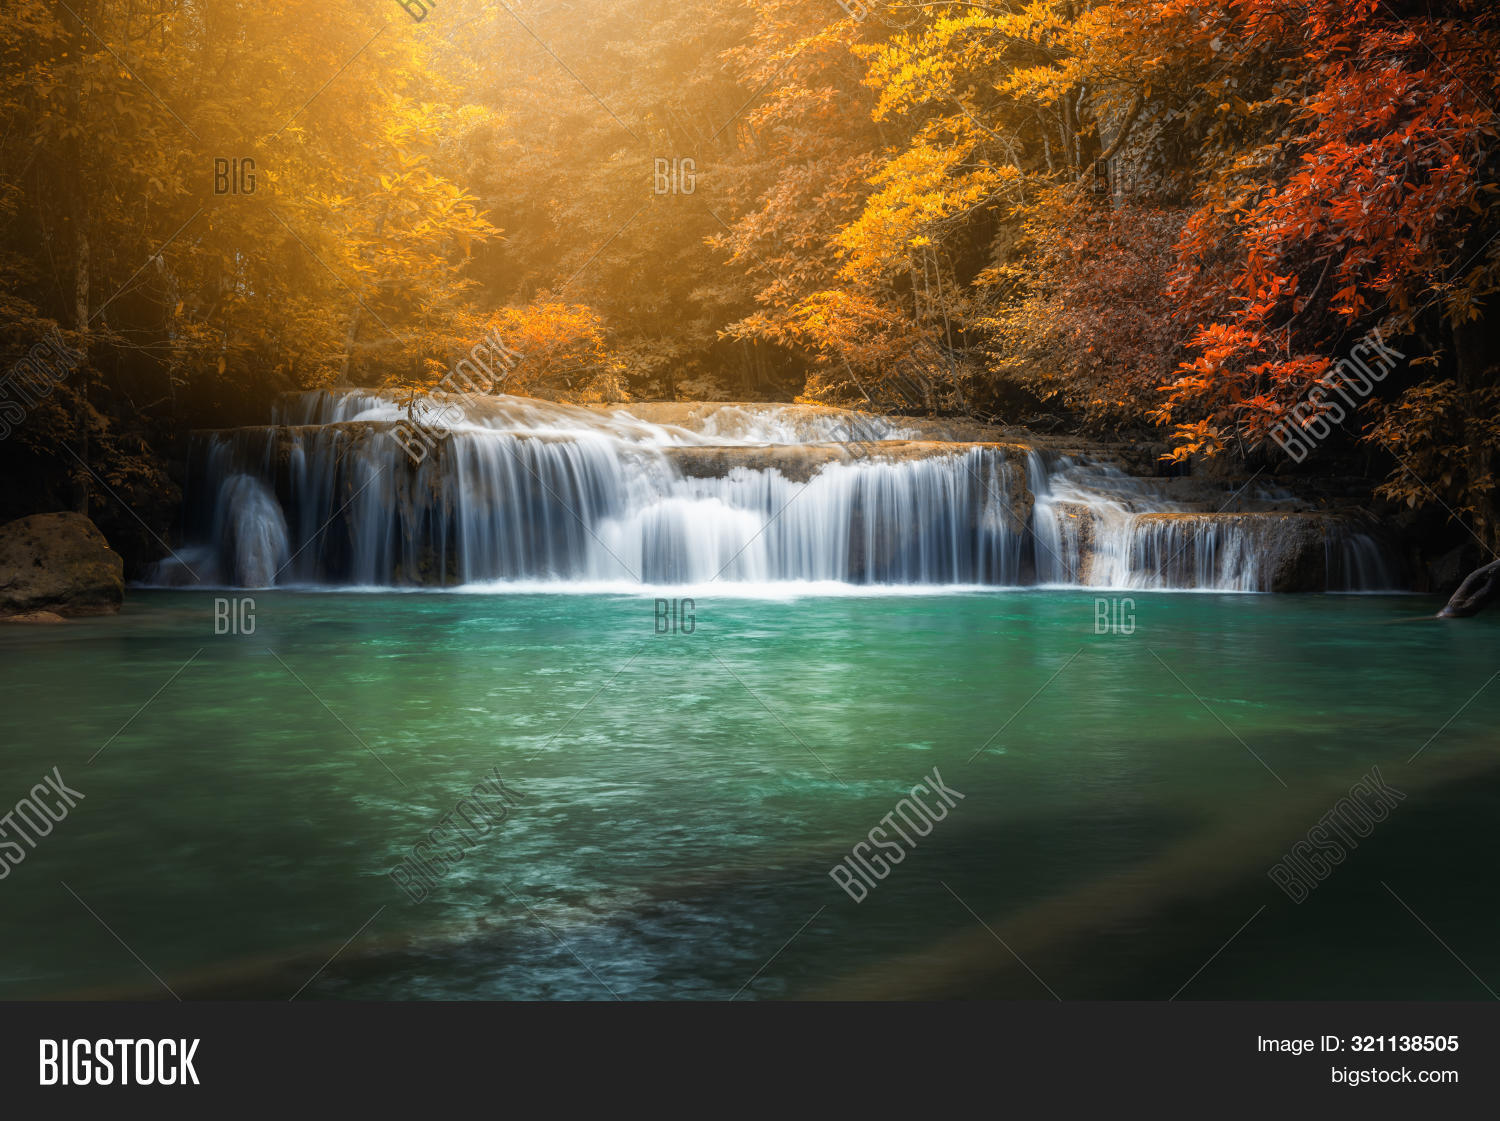 amazing,autumn,background,beautiful,cascade,clean,colorful,cool,creek,emerald,exposure,fall,flowing,foliage,forest,freshness,green,holiday,jungle,landscape,leaf,long,motion,natural,nature,outdoors,paradise,park,place,plant,pool,purity,reflection,relax,river,rock,scenery,scenic,season,stream,travel,tree,tropical,vacation,warm,water,waterfall,wonderful,wood,woodland